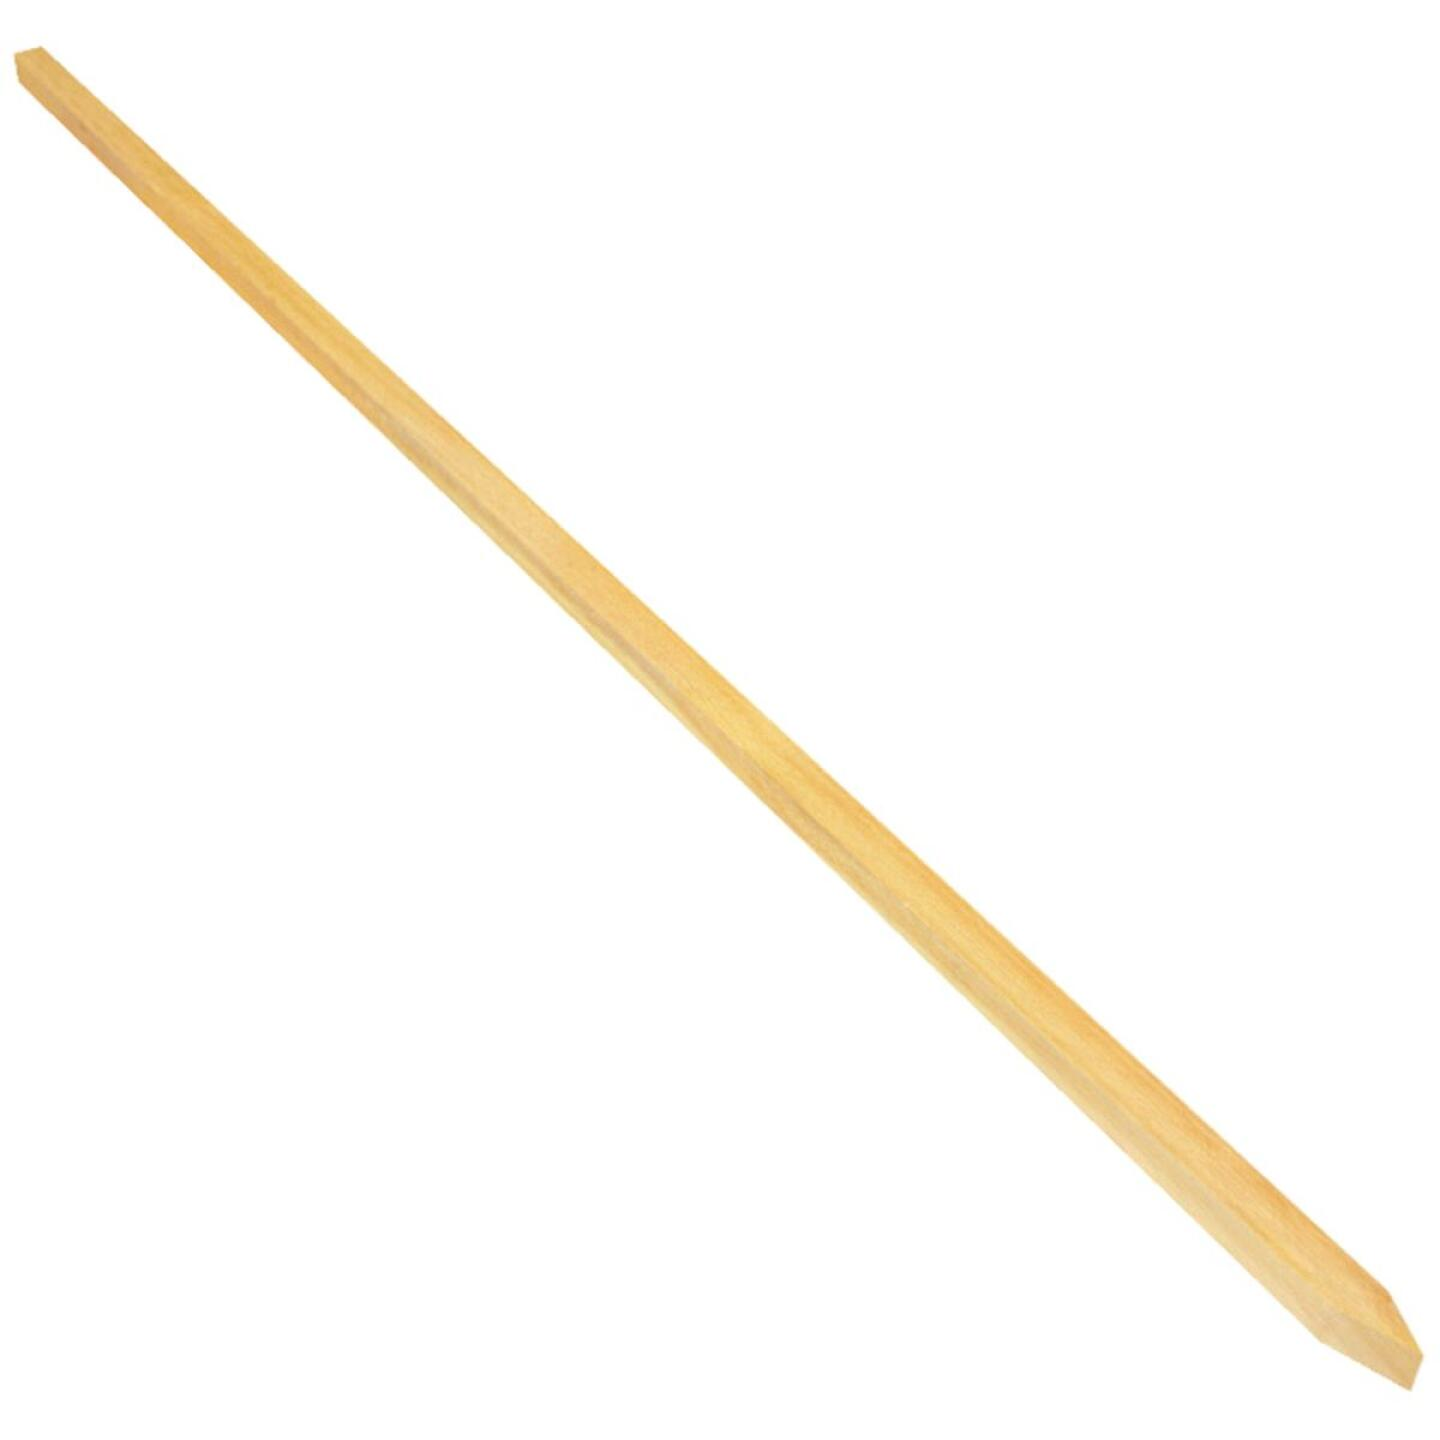 Greenes Fence 4 Ft. Wood Plant Stake Image 1